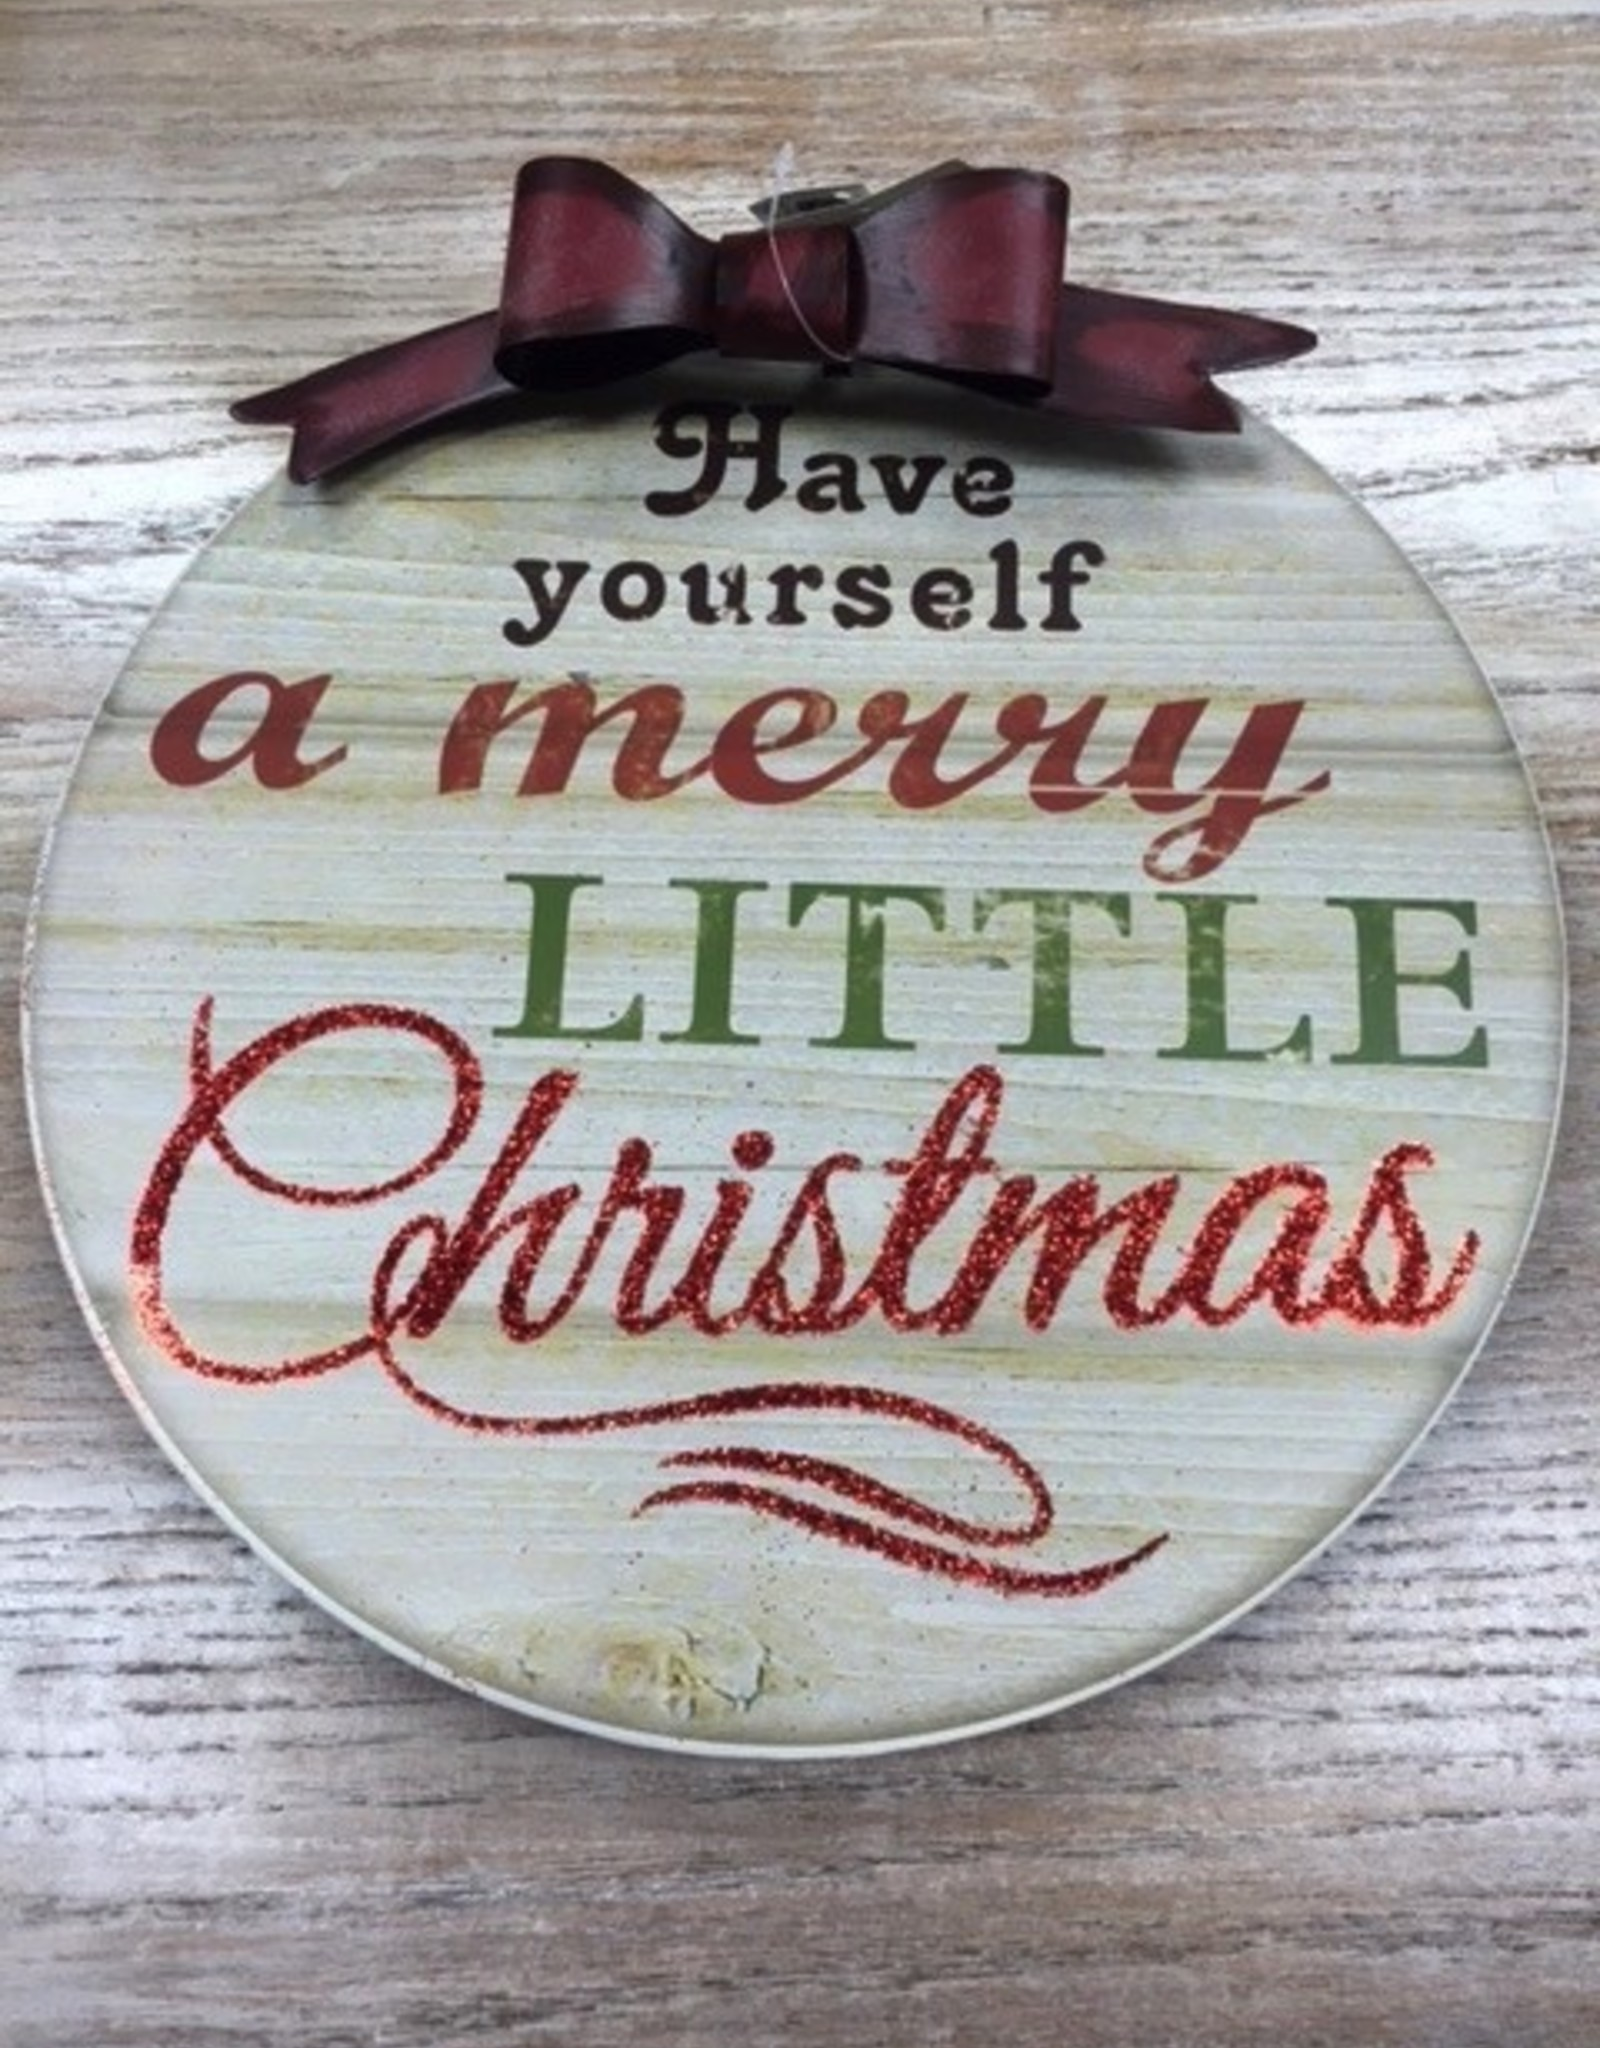 Decor Lit Have Yourself Ornament Sign